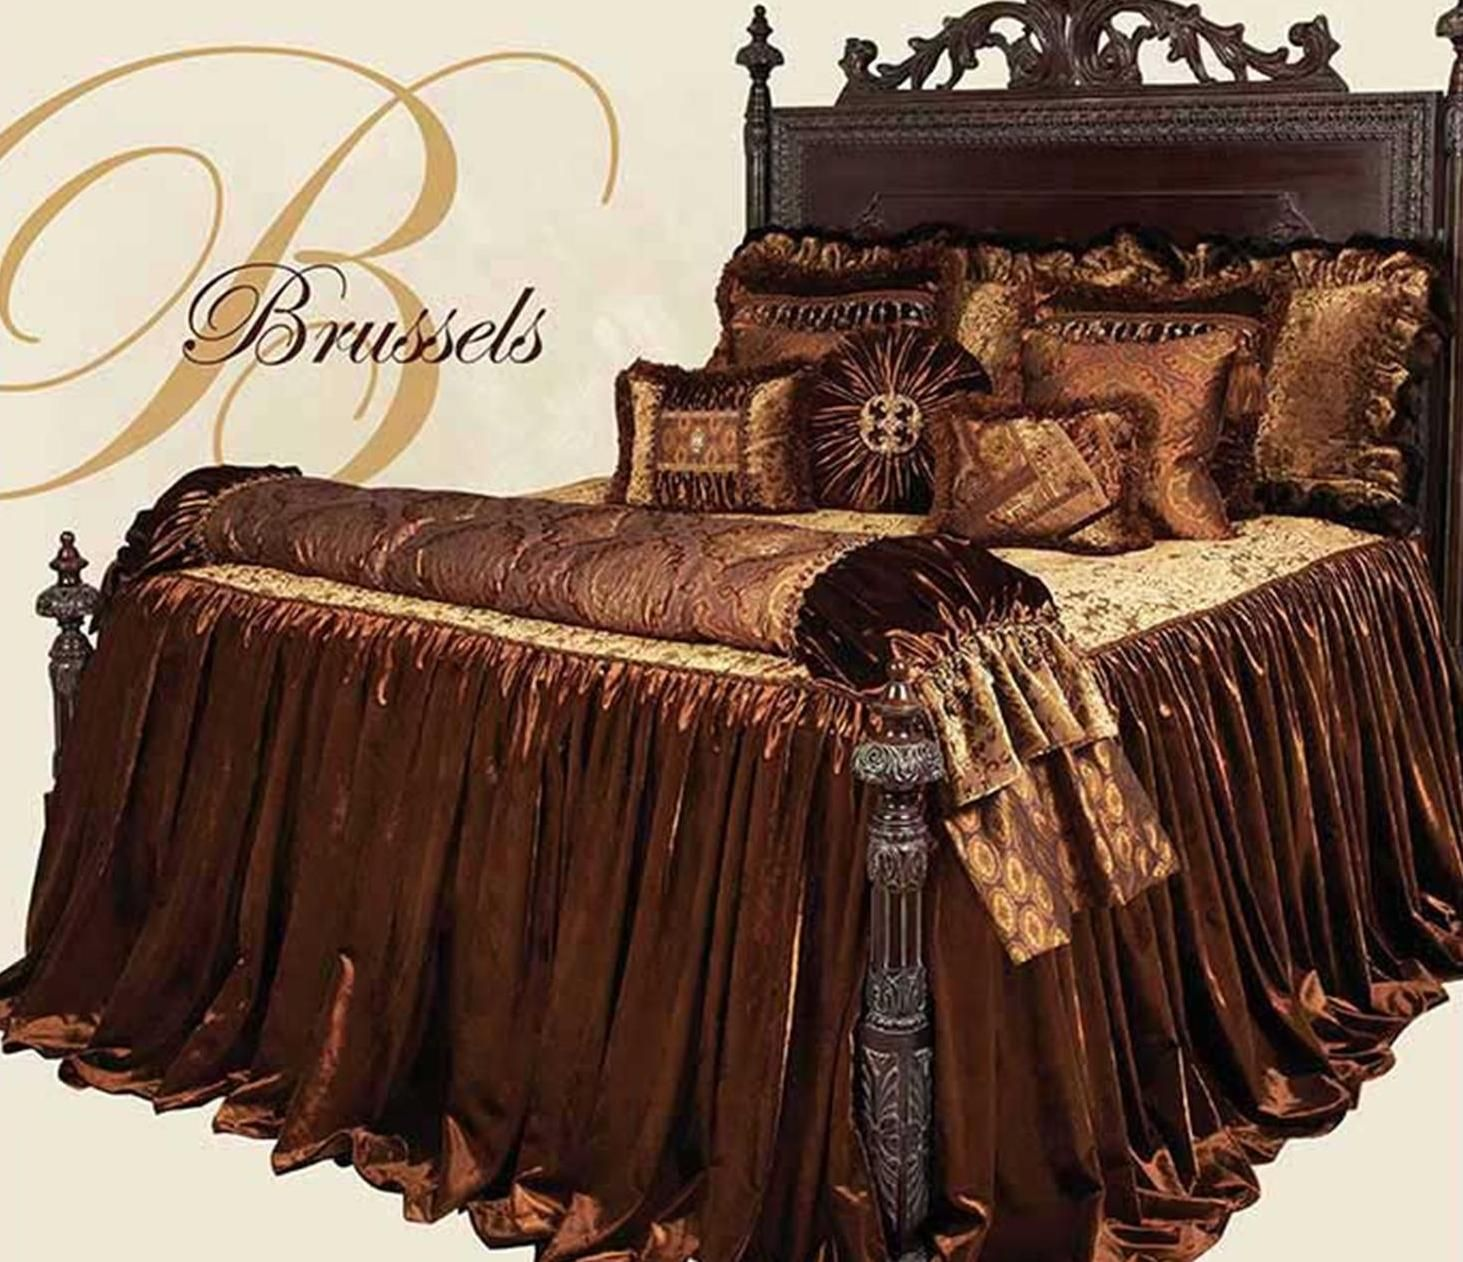 Brussels Luxury Bedding Collection Designed In Gold Toned Cut Velvet